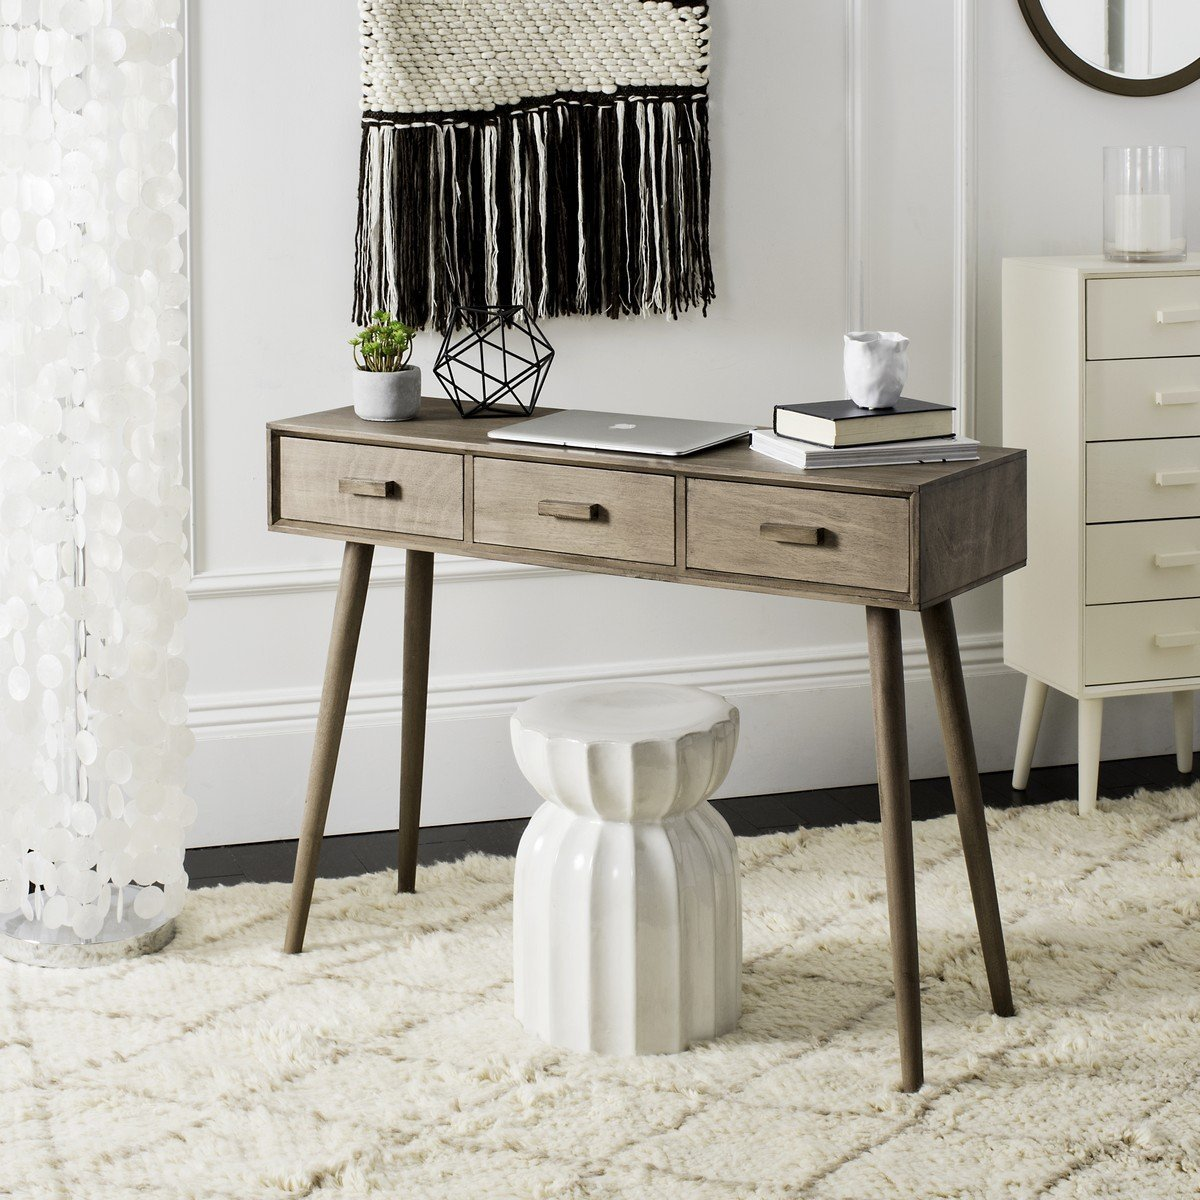 Albus 3 Drawer Console Table.